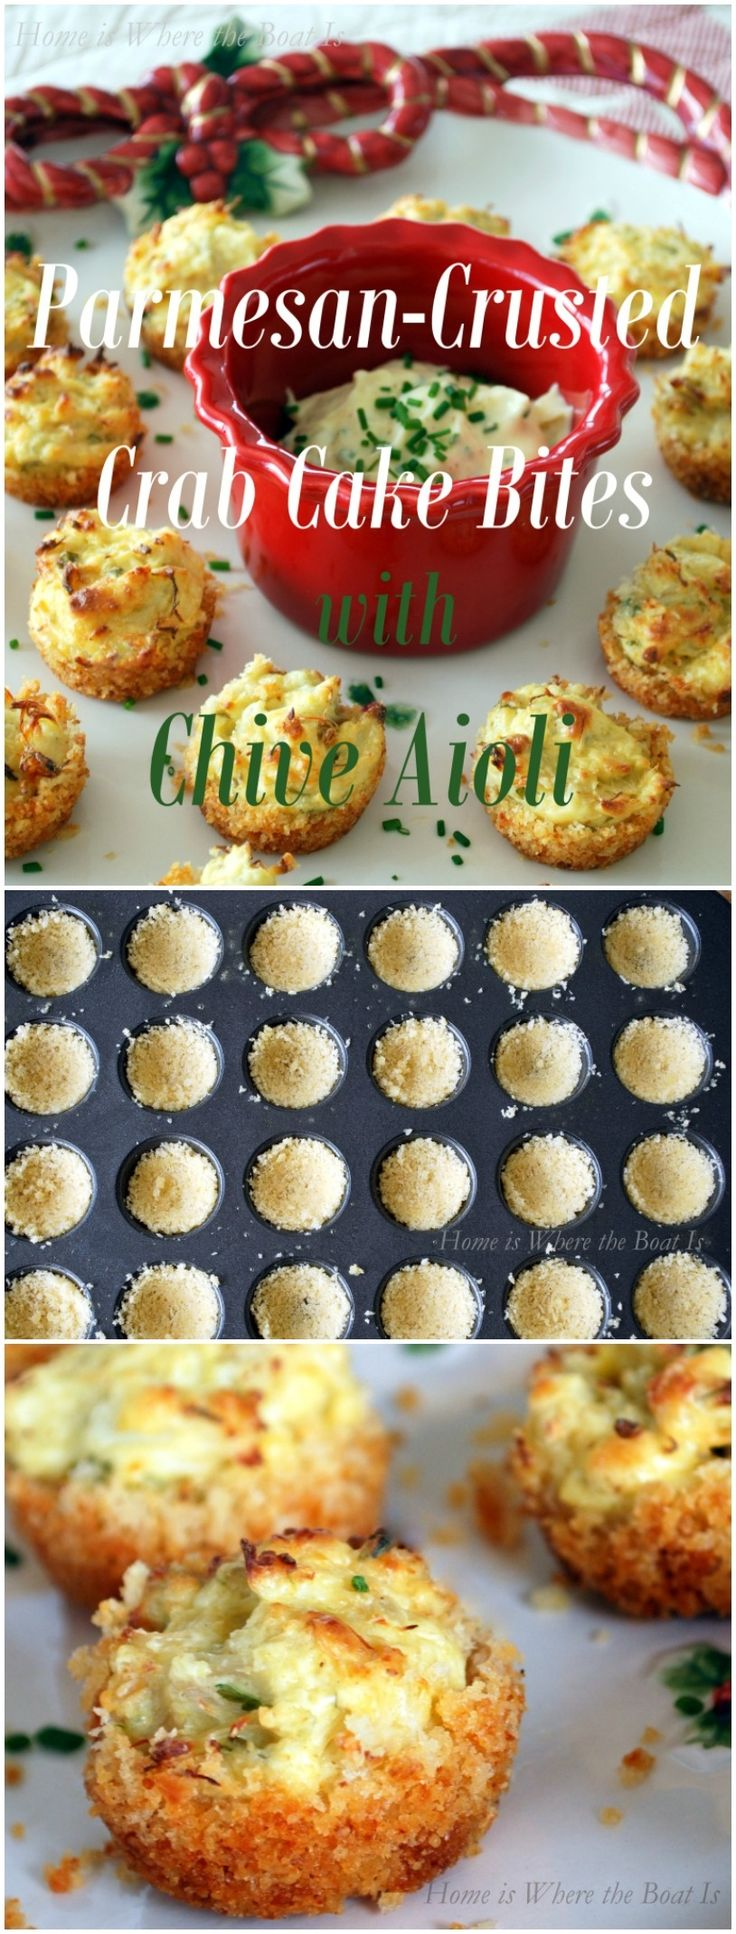 nike shoes womens walking Parmesan-Crusted Crab Cake Bites with Chive Aioli, a great little appetizer to serve for the holidays! The crab mixture can be made a day in advanc… | Pinteres…